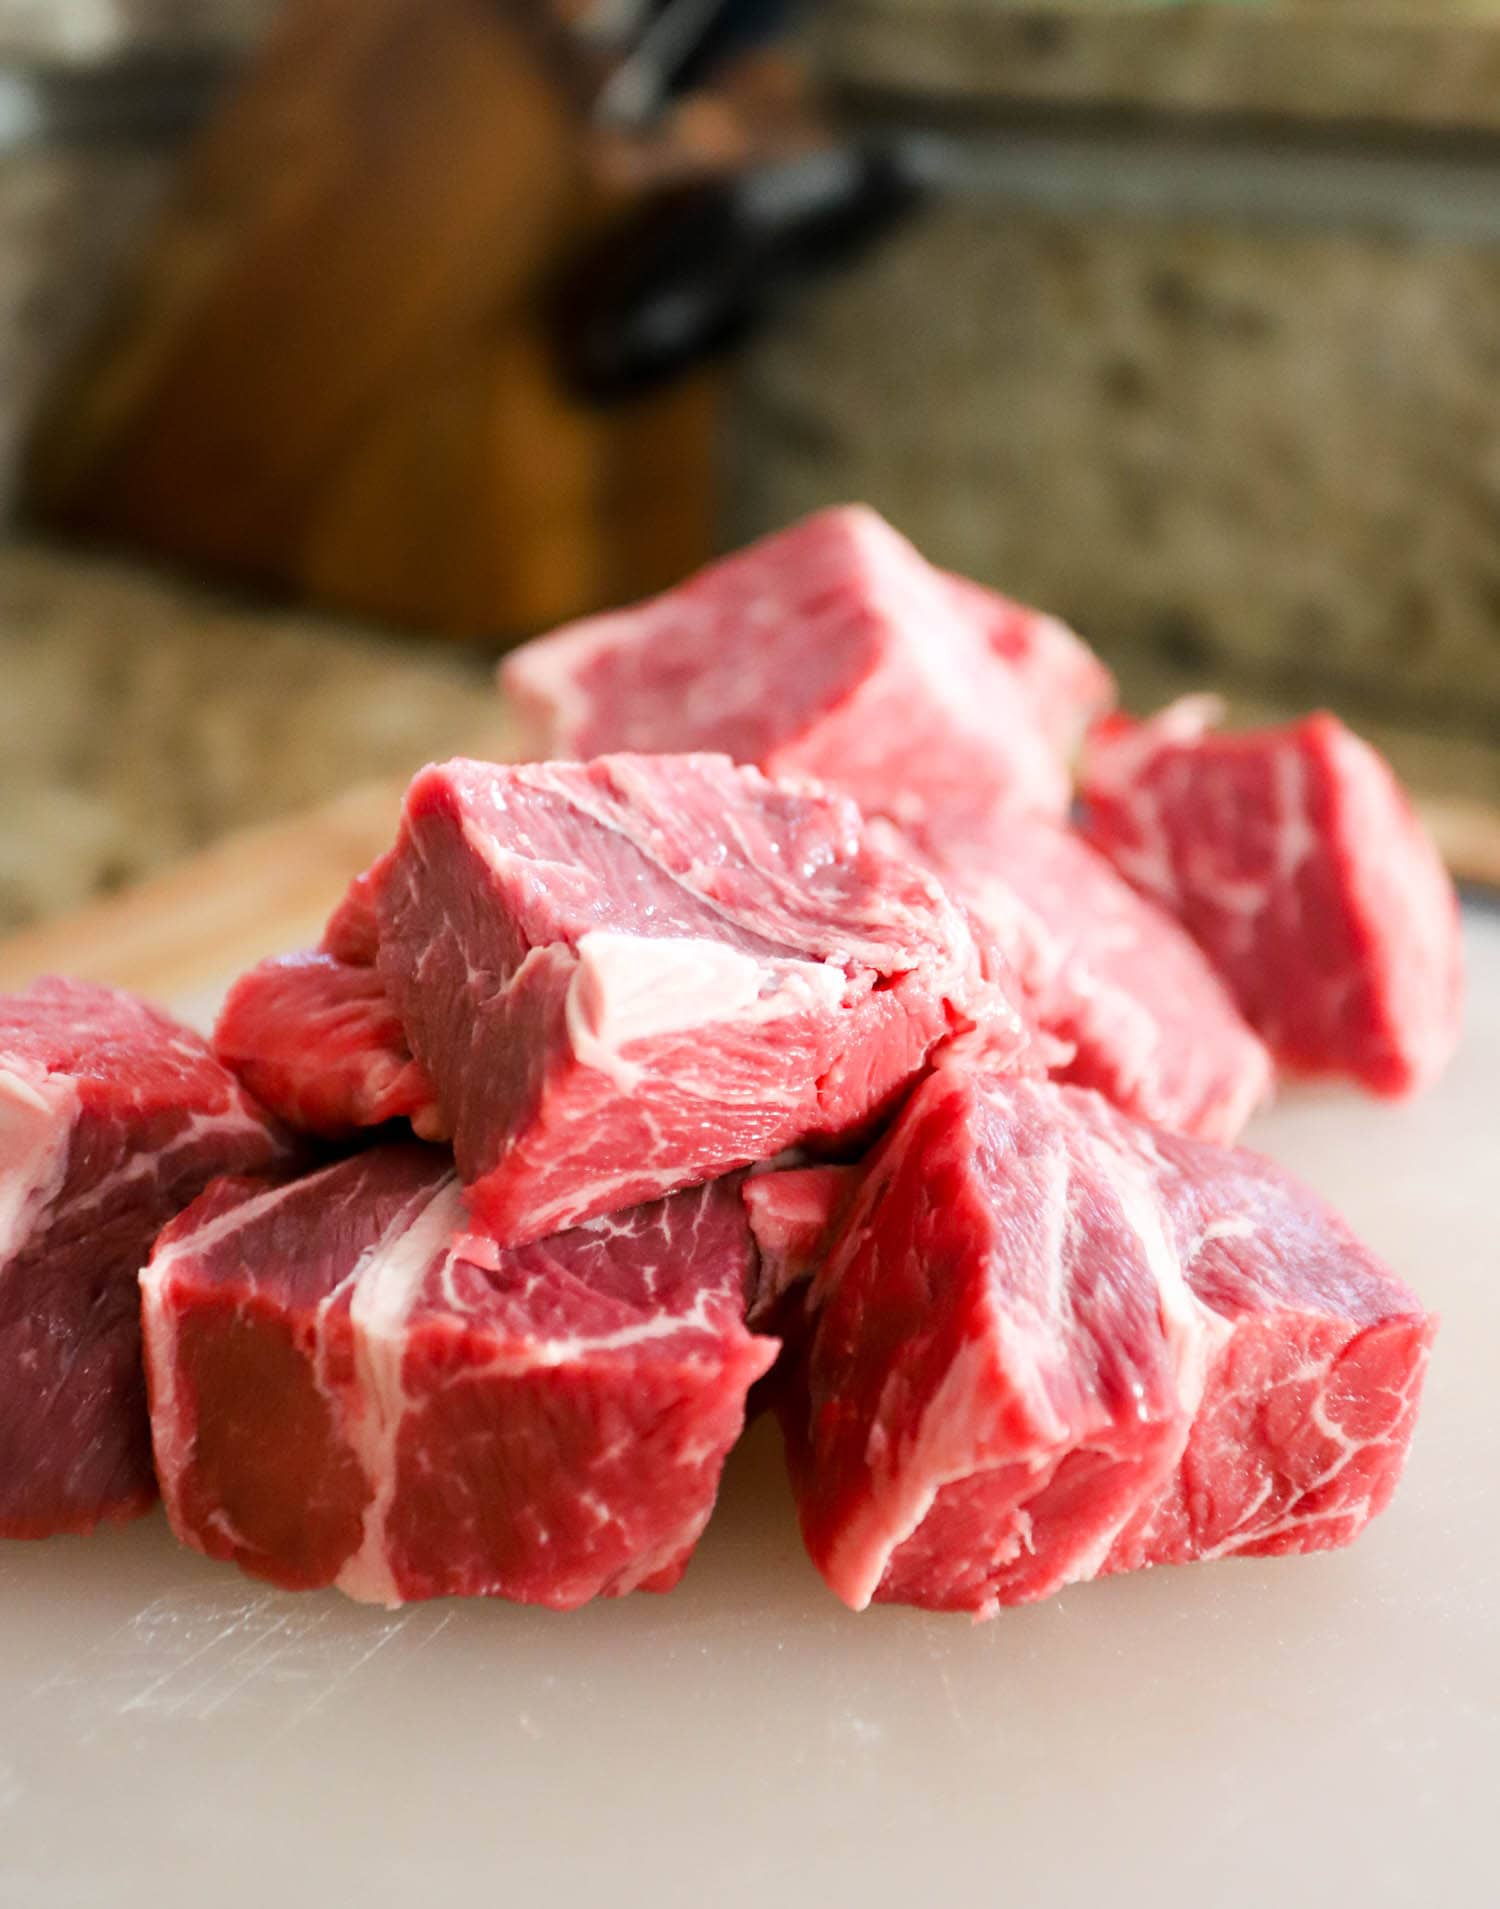 large chunks of beef cut, close up detail shown with granite counter in background.